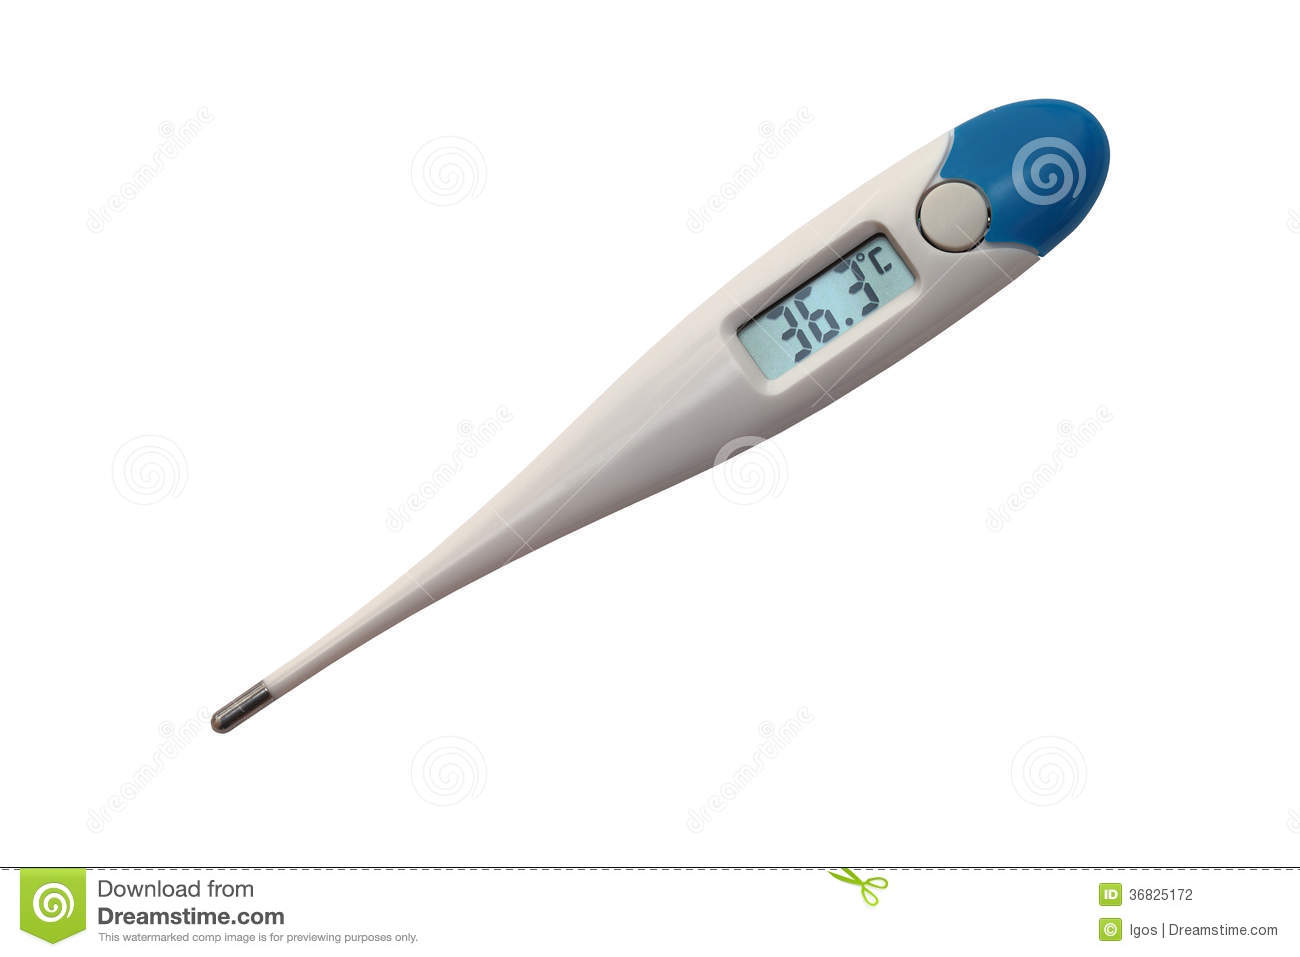 Buy Dr. Gene Digital Thermometer Hardtip (KFT04) Online at Best Price bet at home samuel lbet at home l. jackson bet at home czat ...